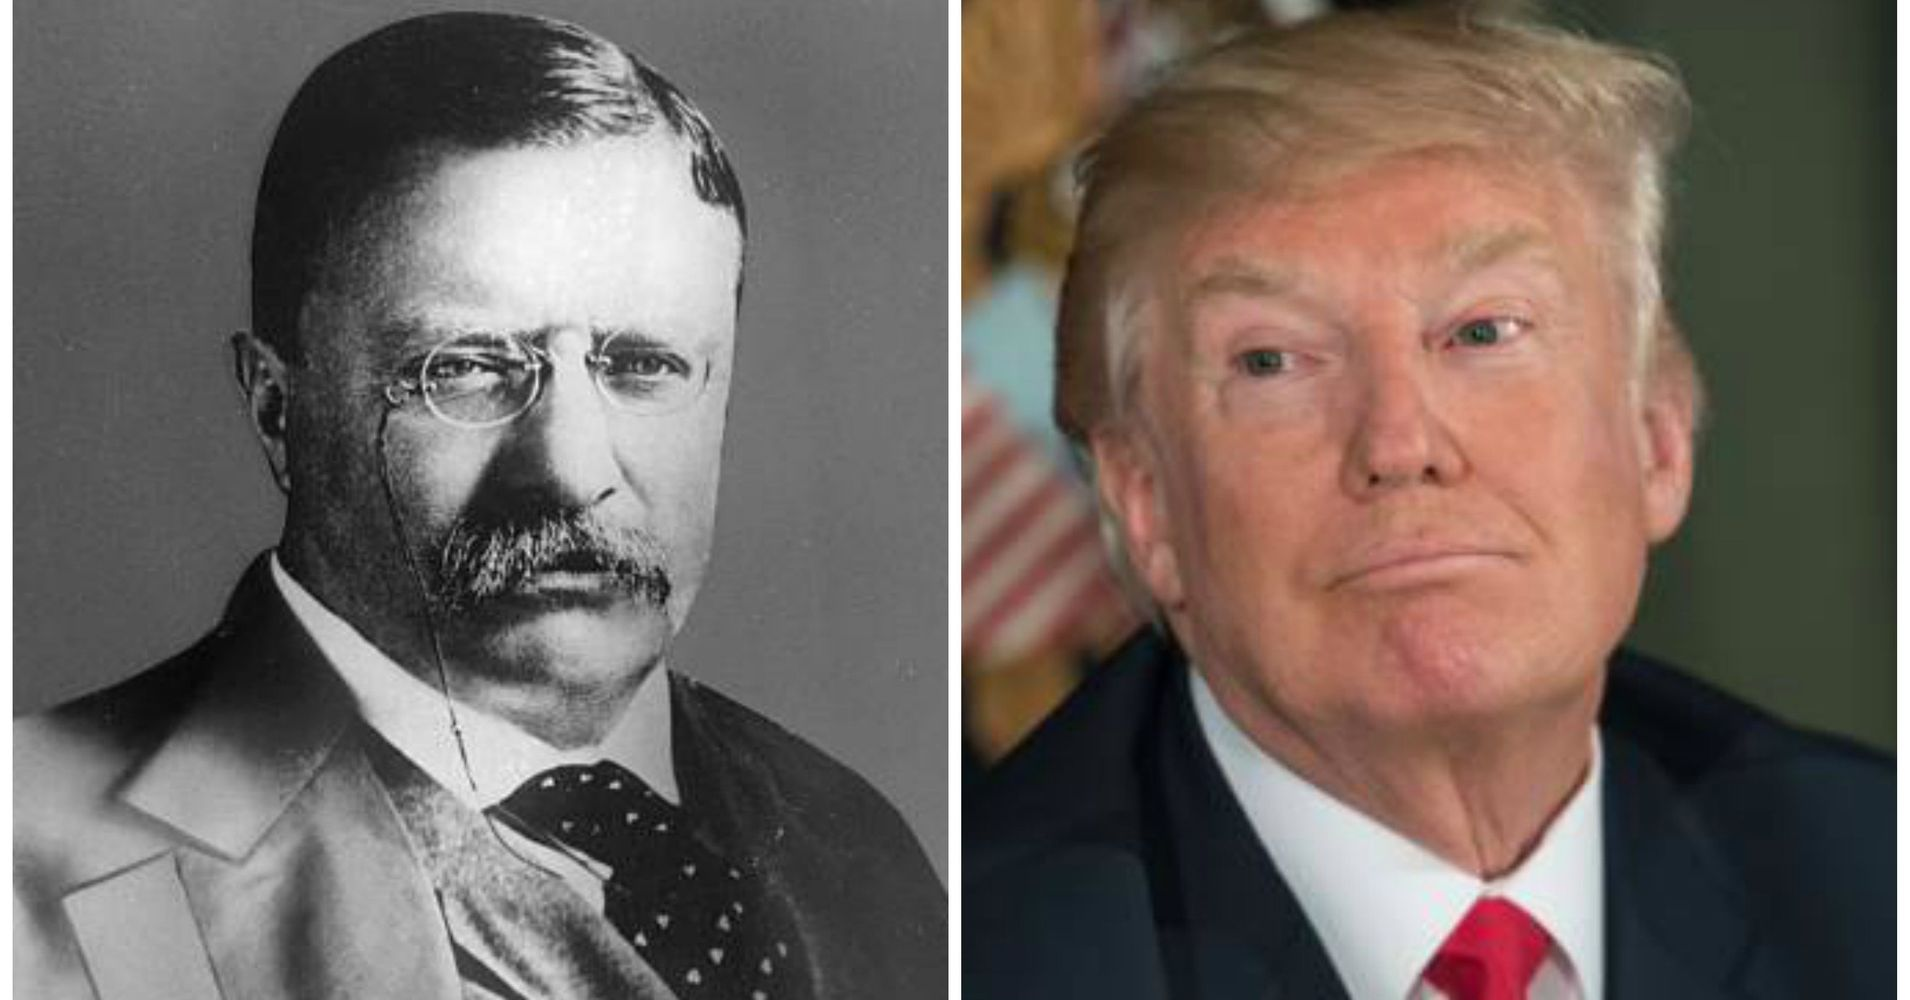 Pence Calls Trump A 'Builder Of Boundless Optimism,' Compares Him To Teddy Roosevelt